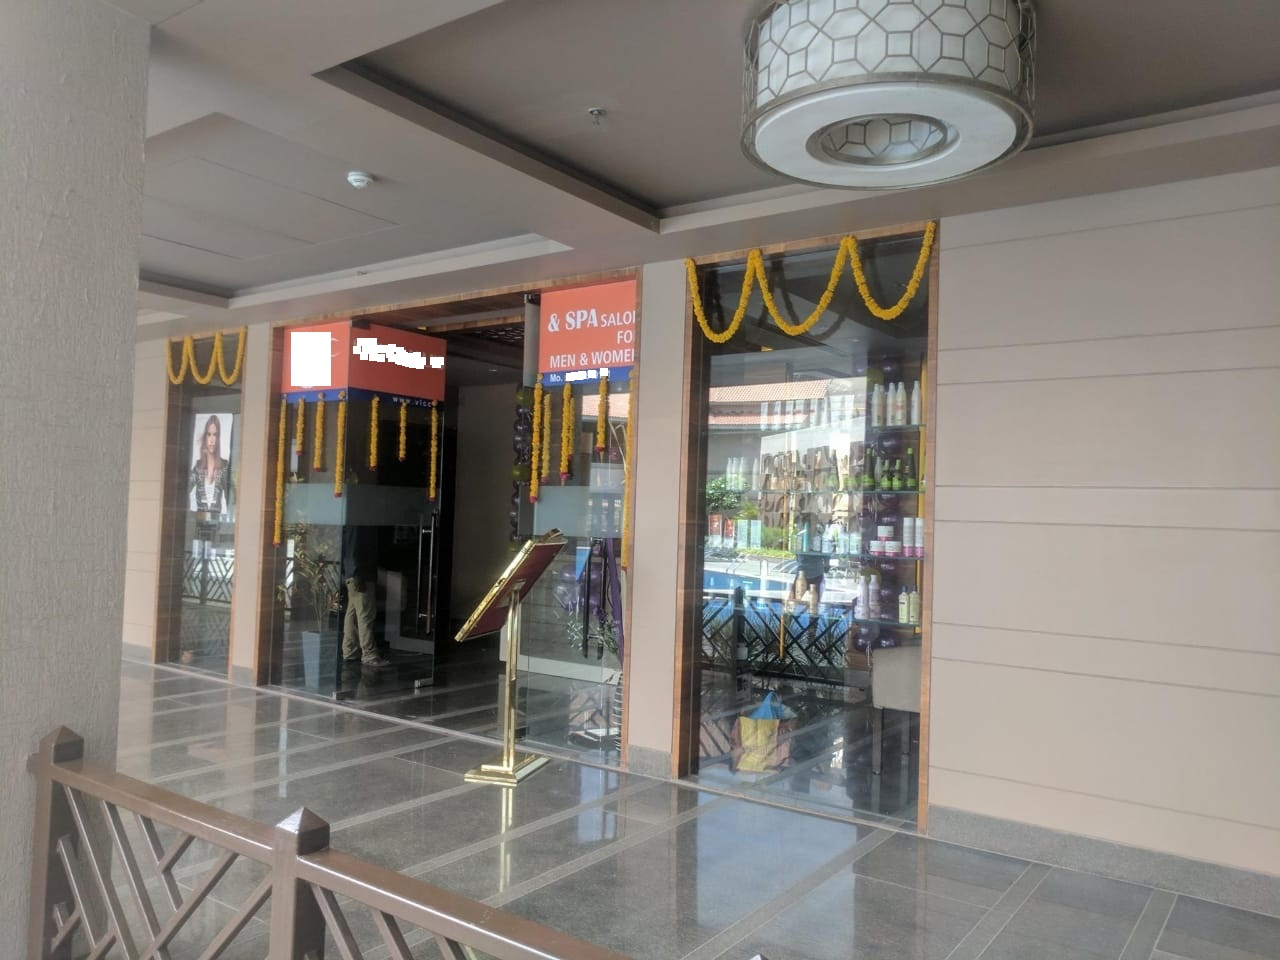 Reputed and Profitable High-End Unisex Spa and Salon Business for Sale in Bhavnagar